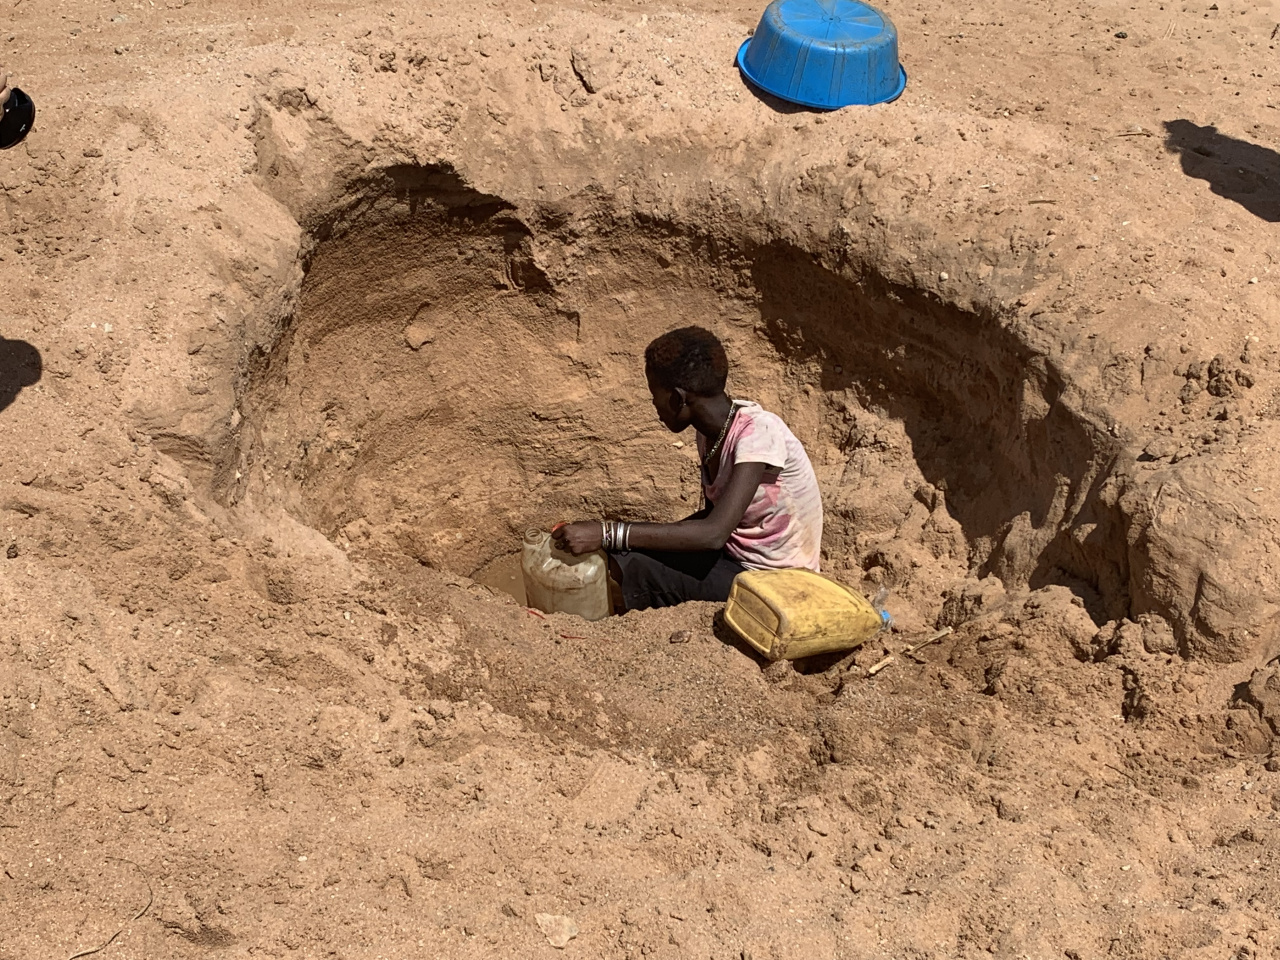 An example of a hand dug well used when no other water sources are available.